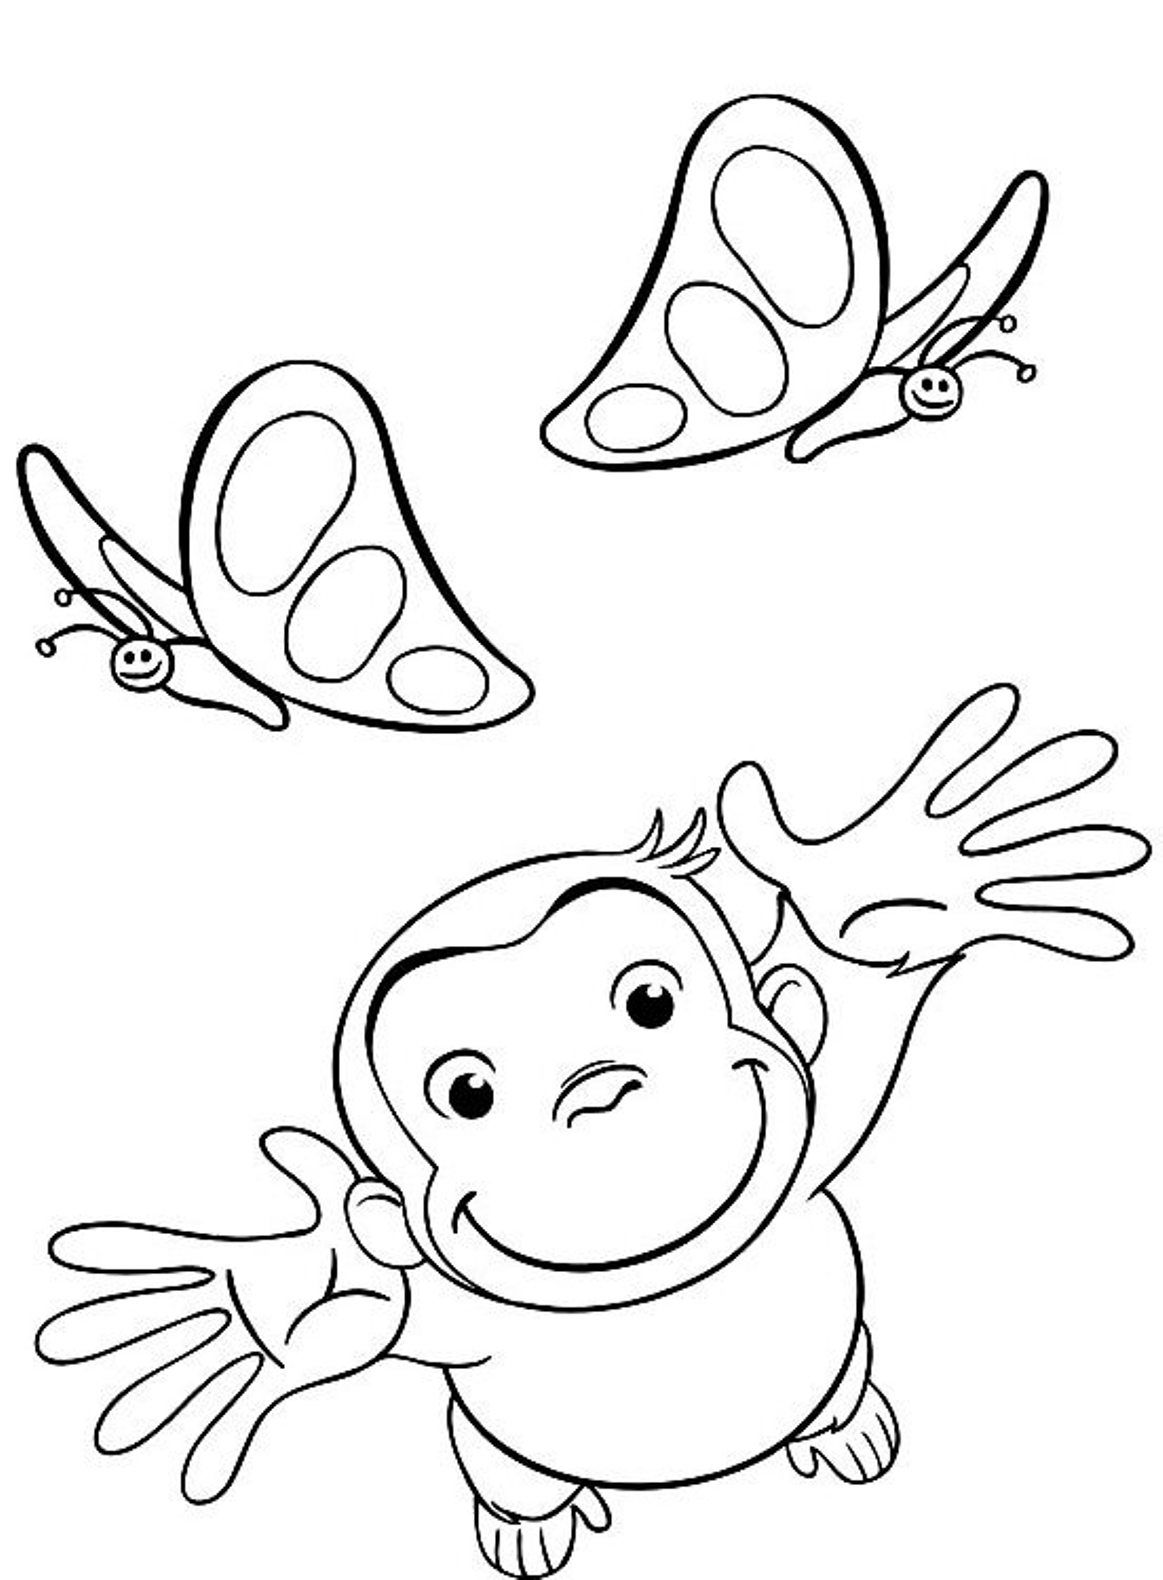 curious george coloring pages playing with butterflies - Curious George Coloring Books